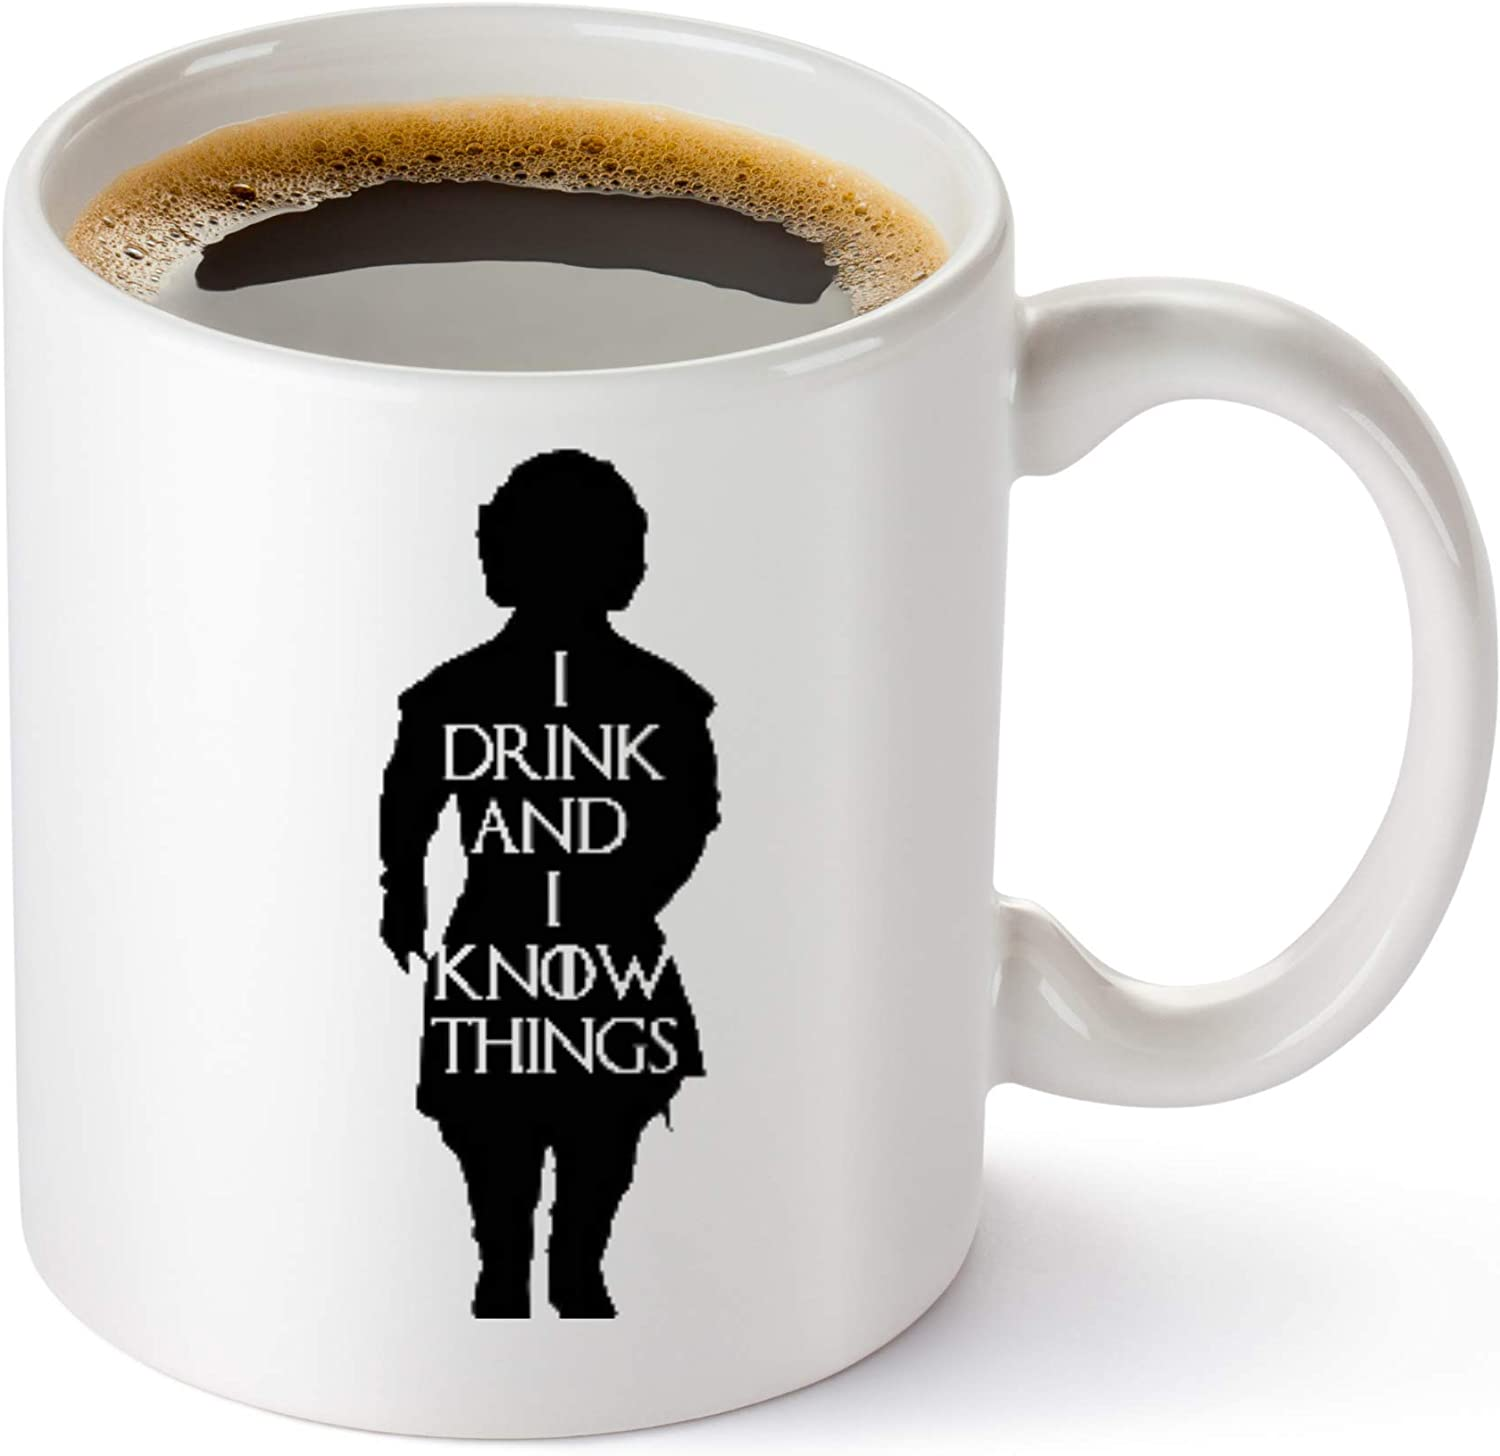 "This is an image of a white mug filled with coffee with ""I drink and I know things"" quote."